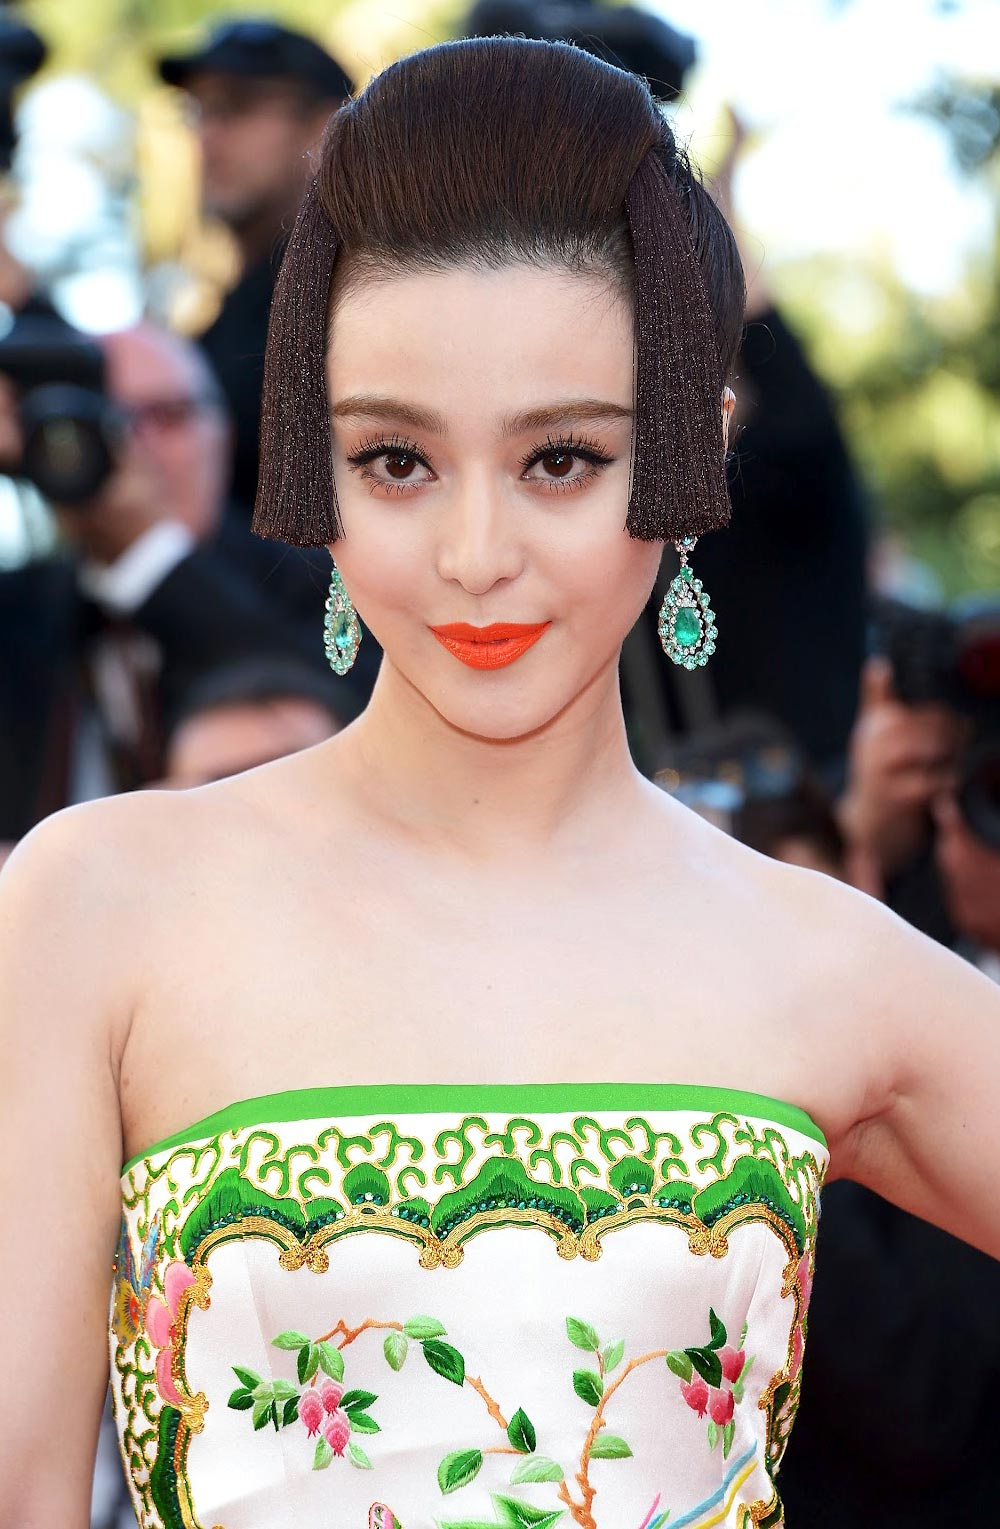 Fan Bing Bing's makeup at 2012 Cannes Film Festival